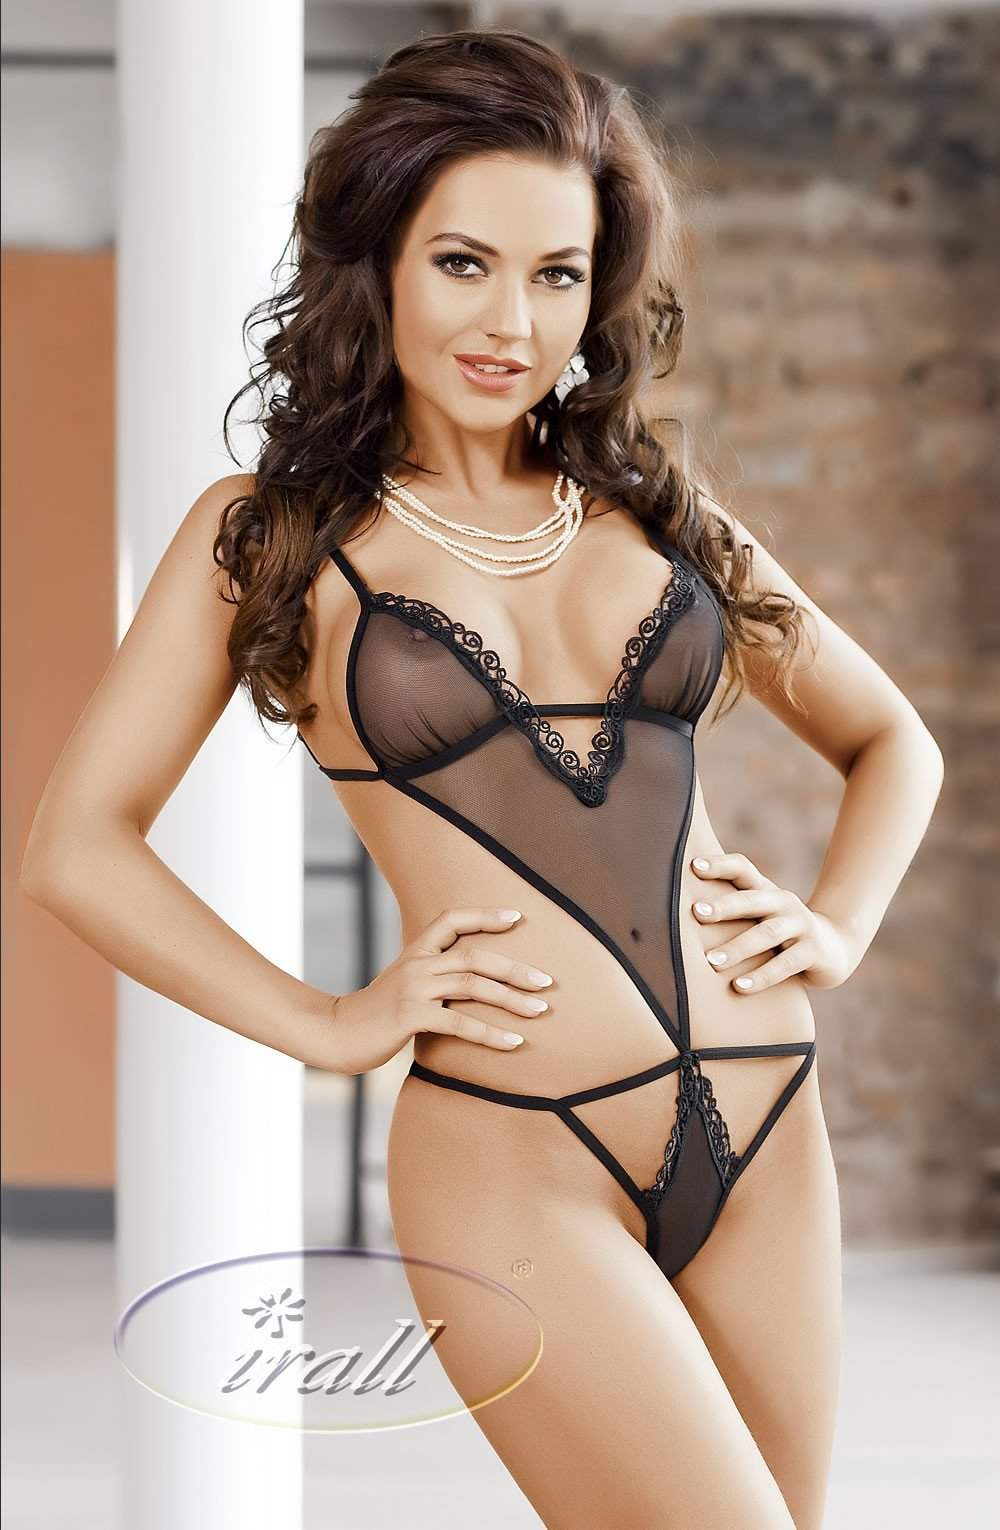 Irall Imogen Body - Irall - Katys Boutique Lingerie USA